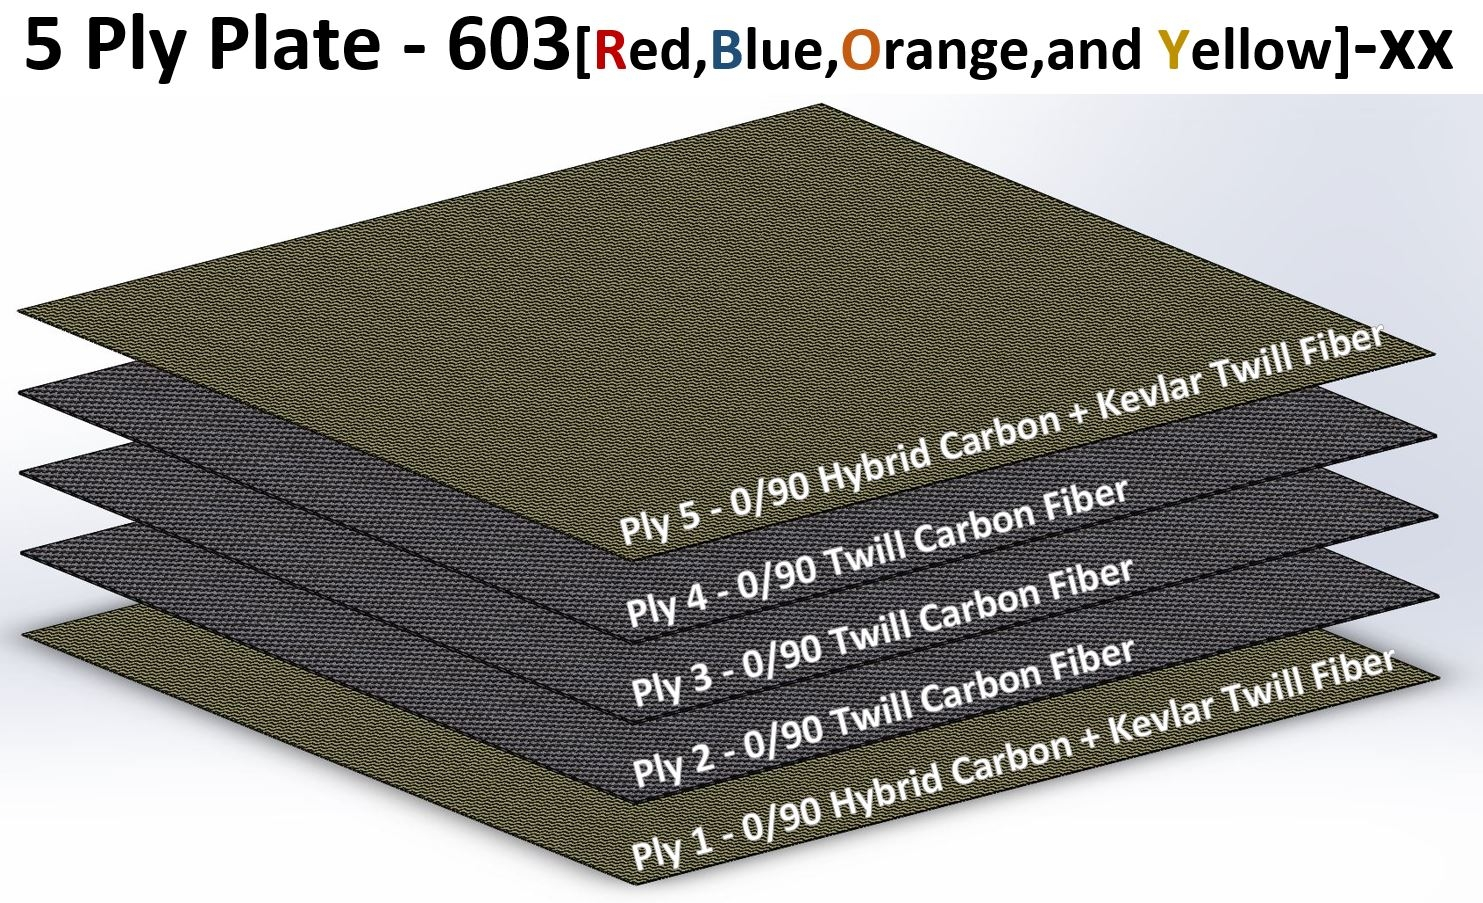 Carbon/kevlar triple layer plate layup